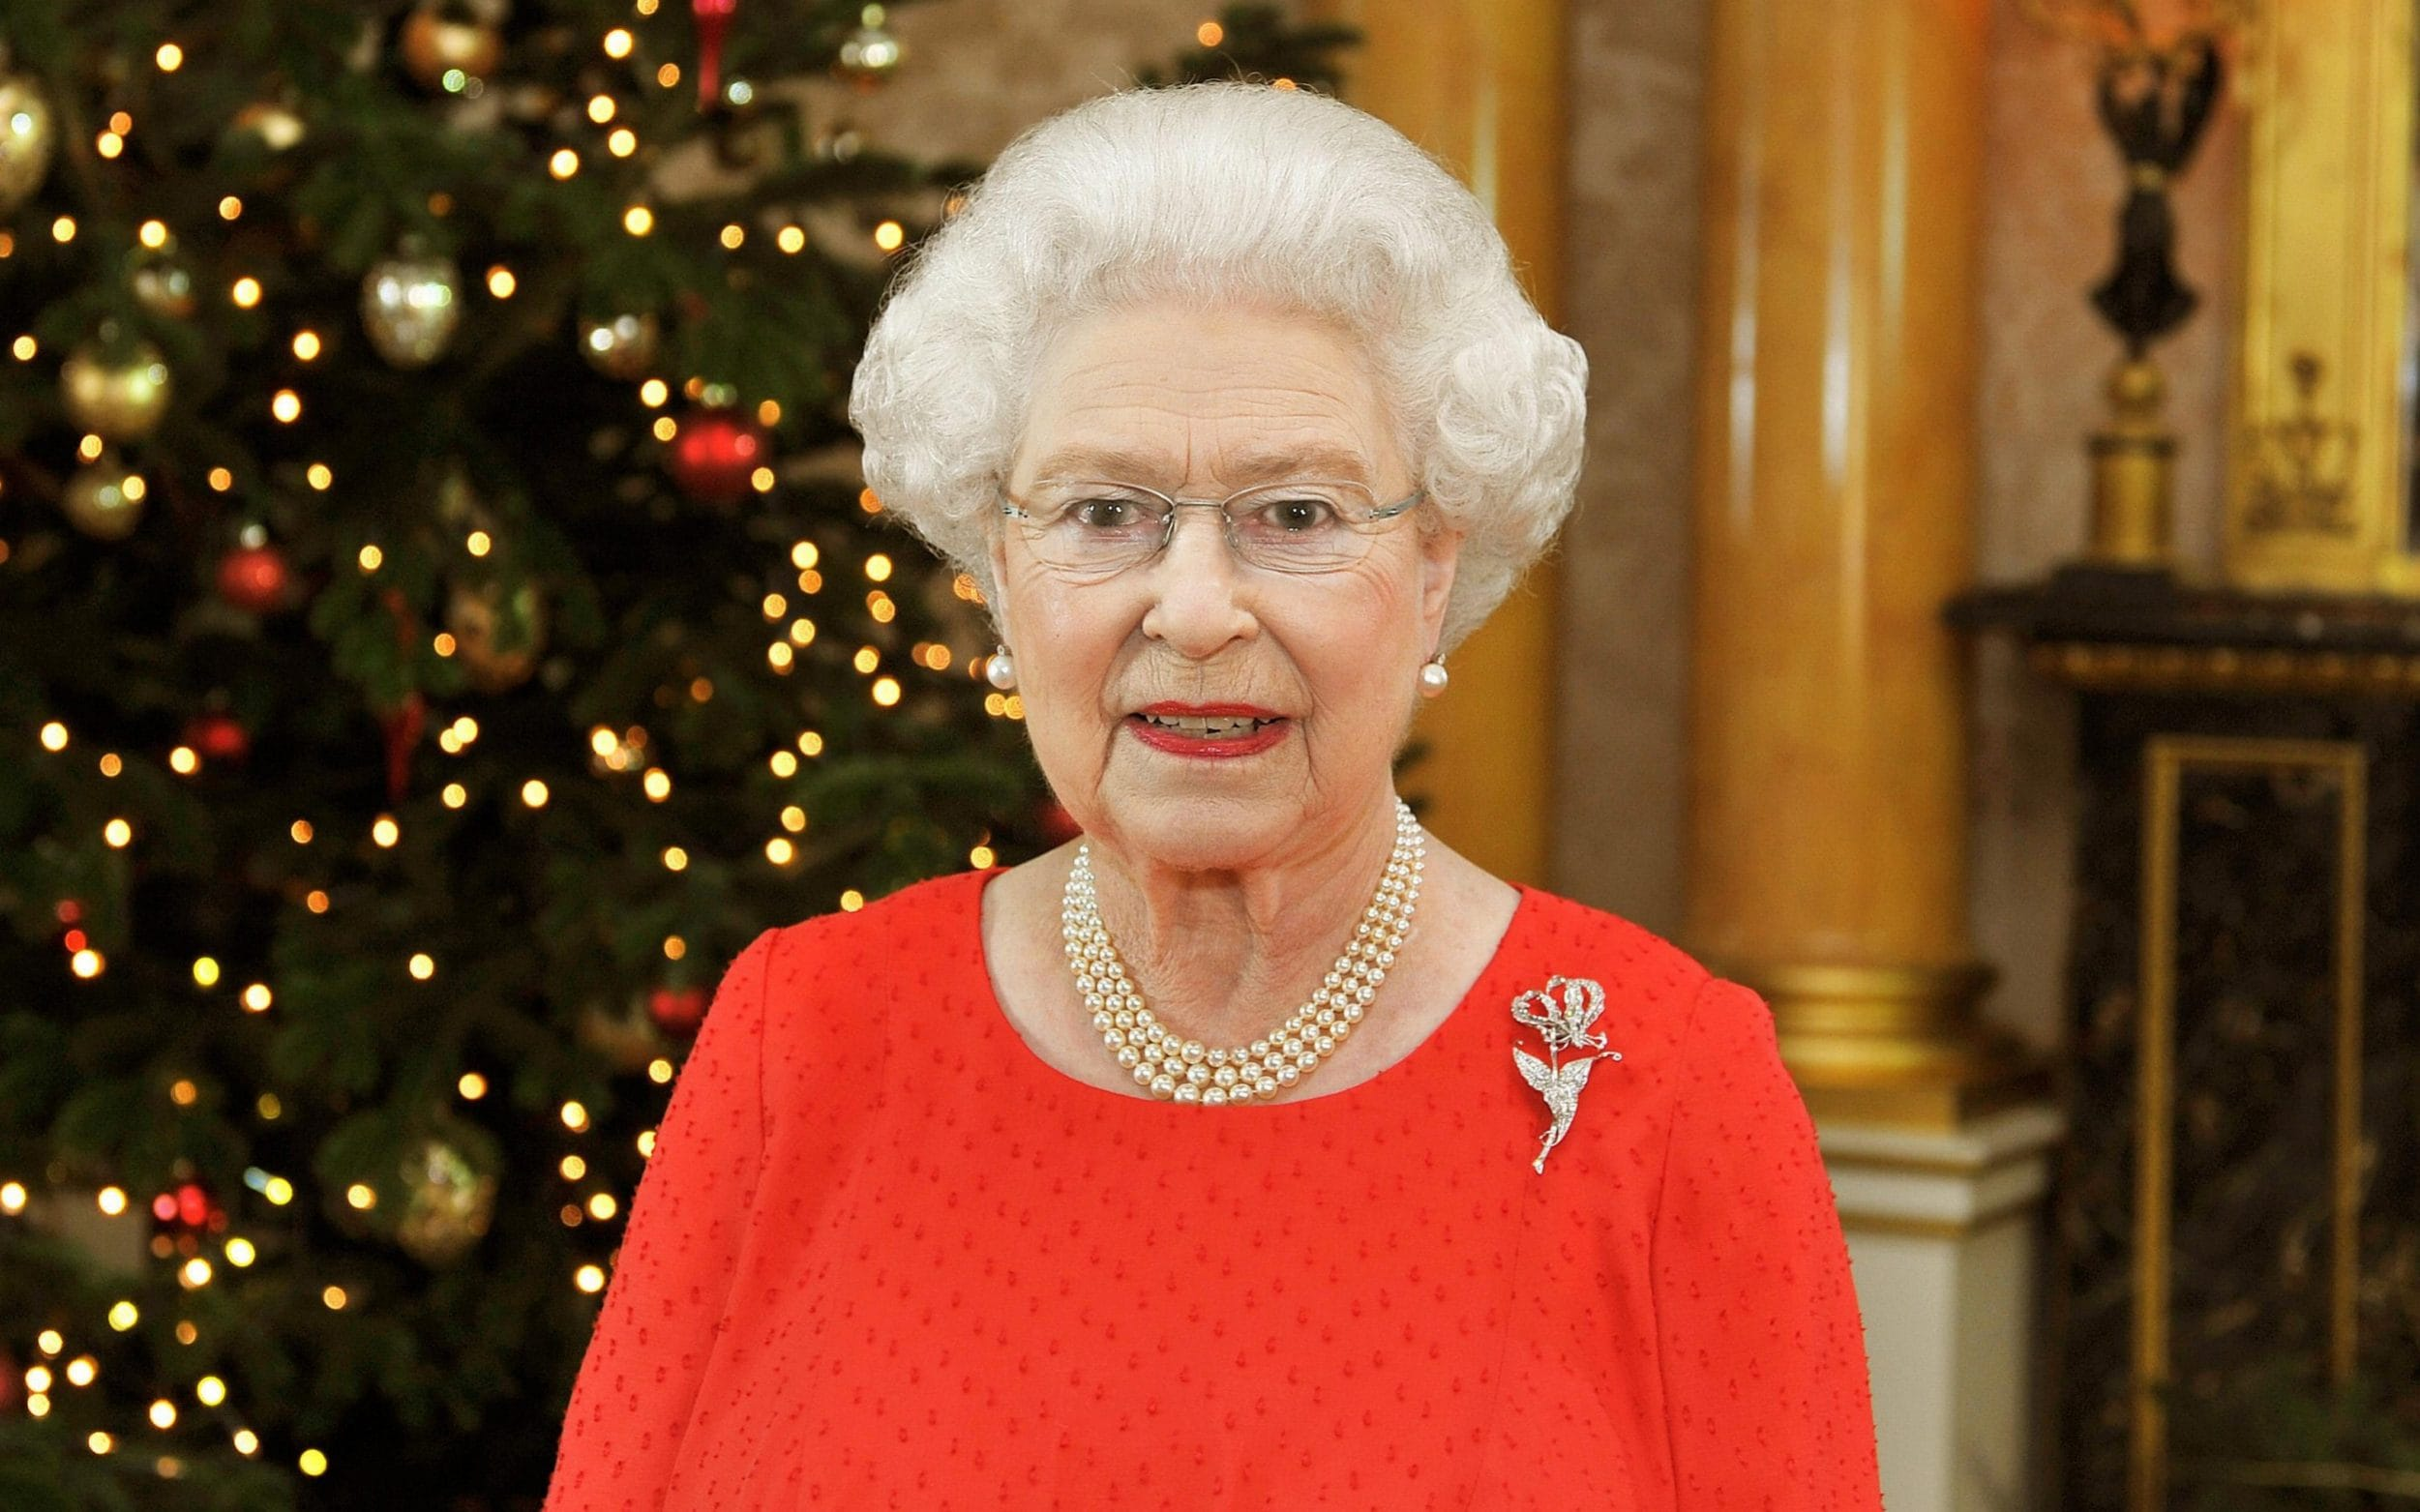 Her Majesty stands in the 1844 Room of Buckingham Palace in London, after recording her Christmas Day television broadcast to the Commonwealth in 2011